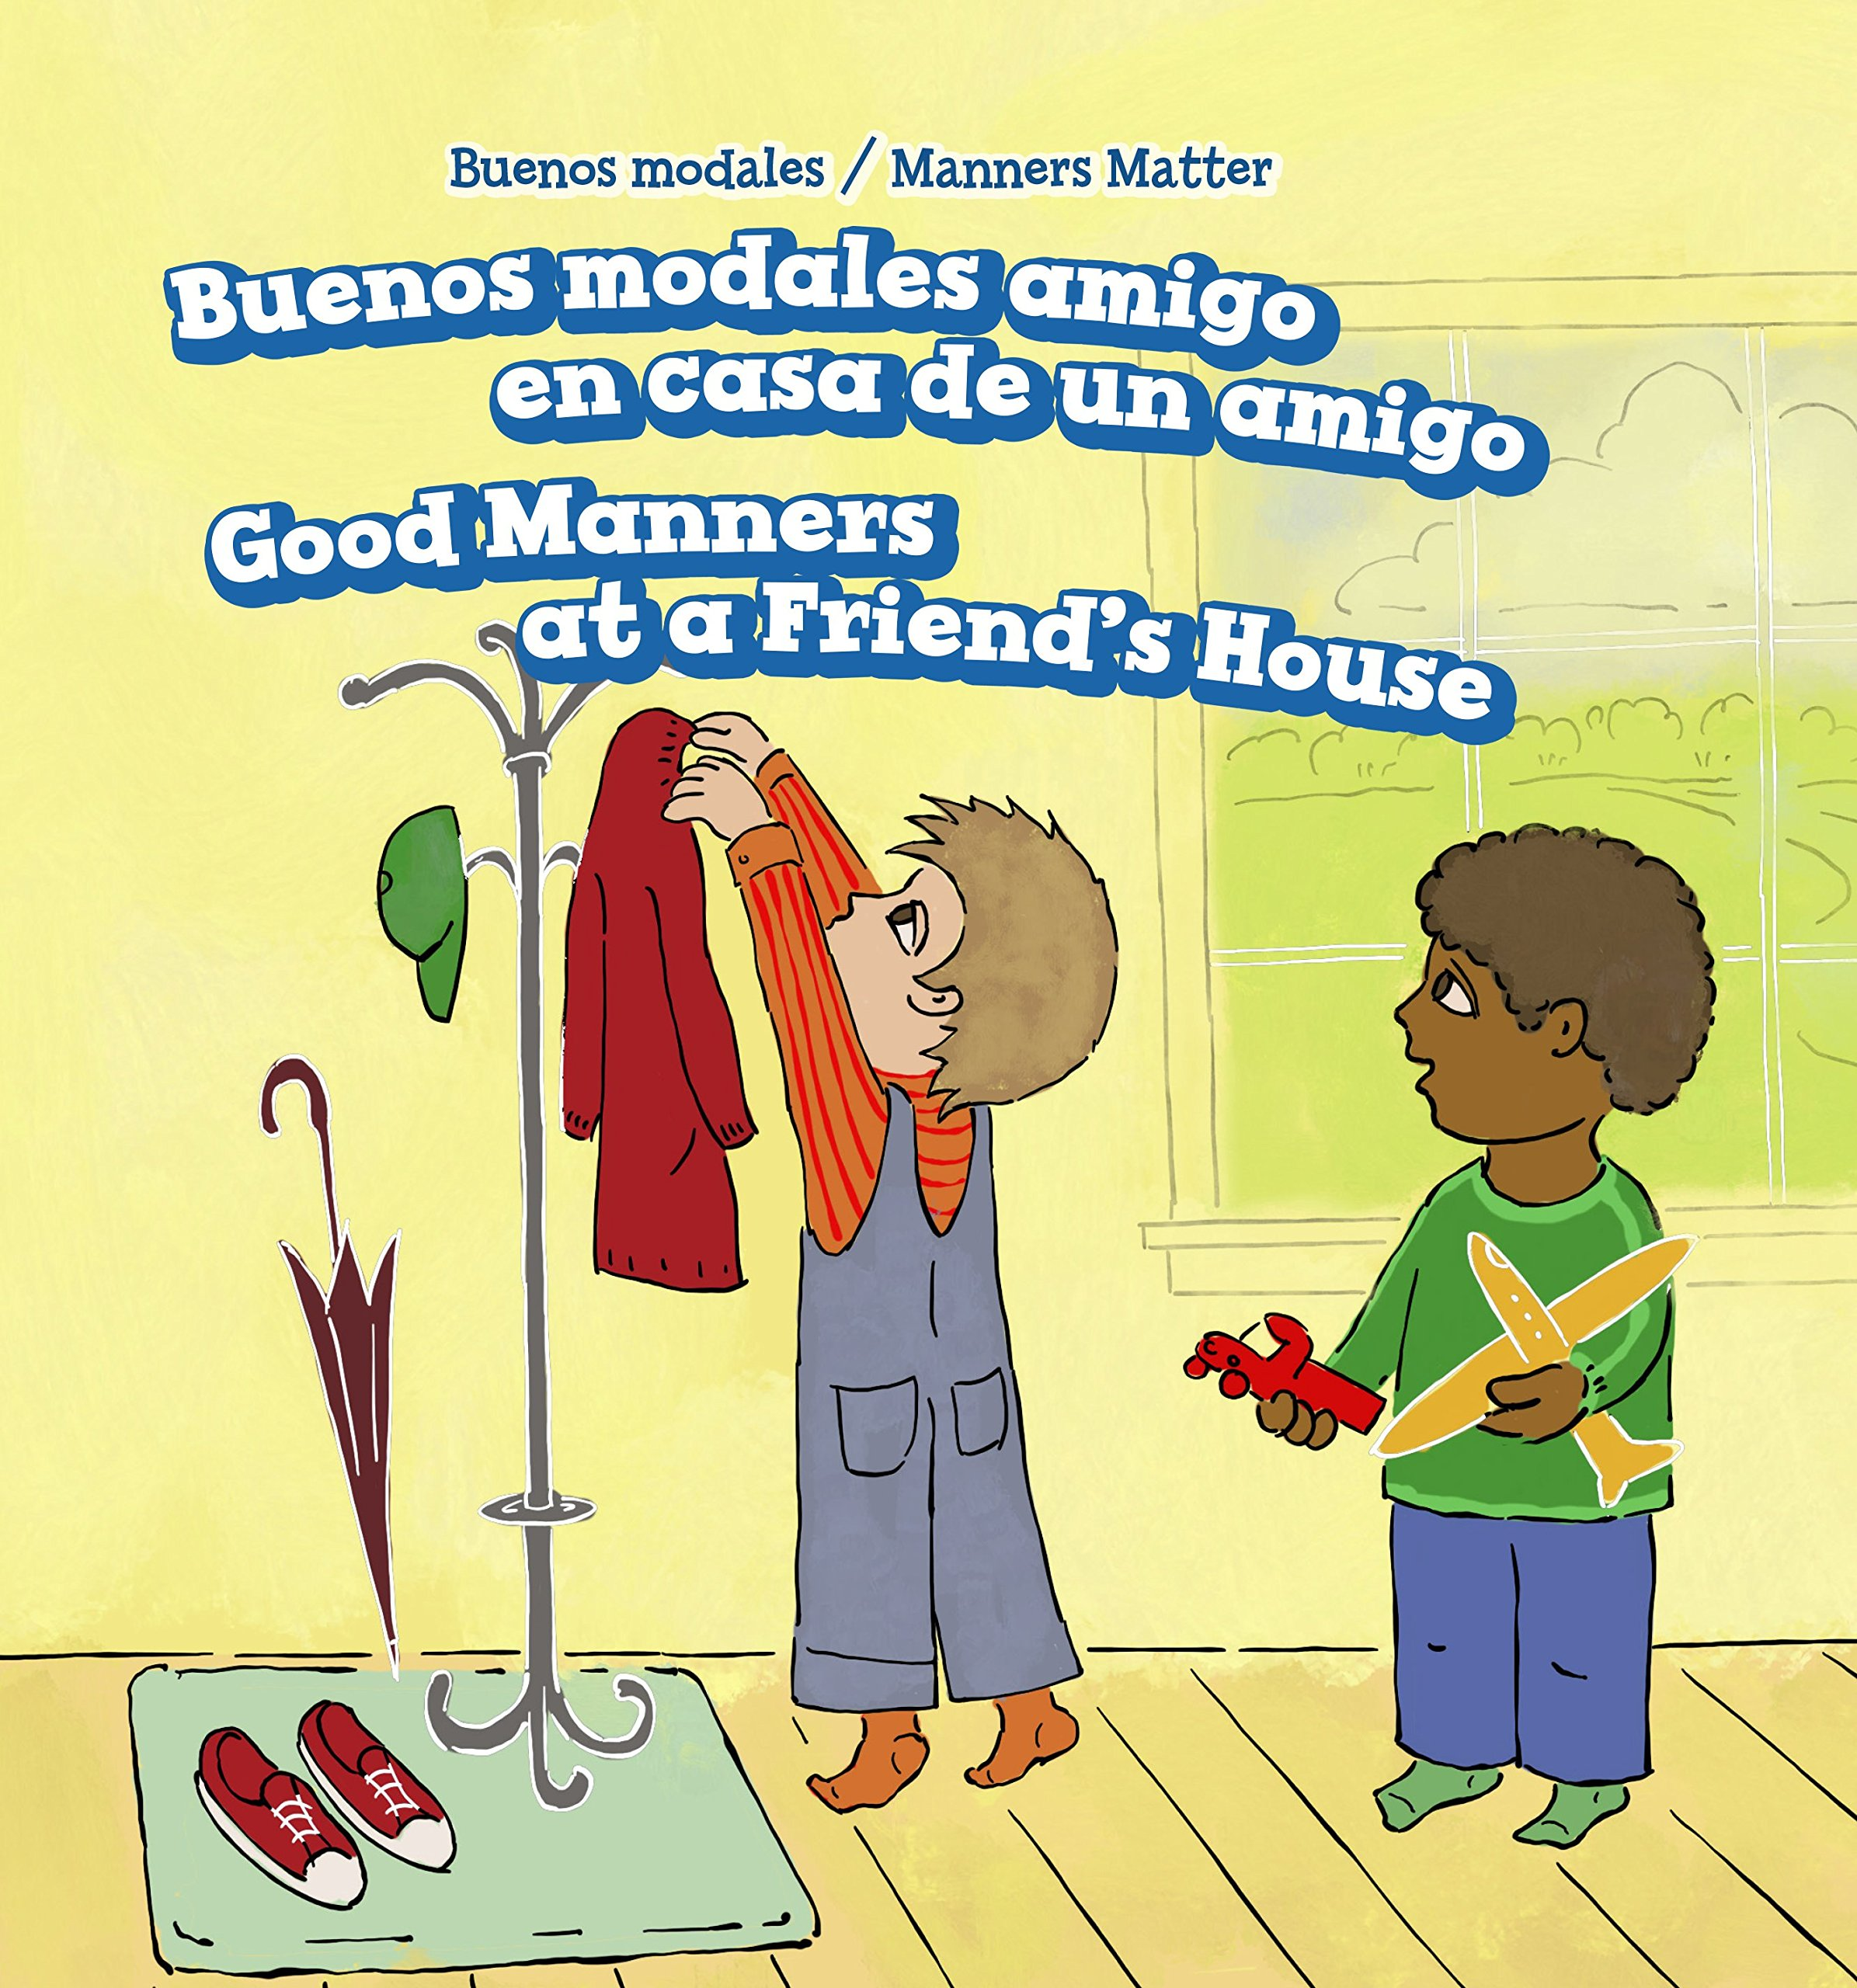 Download Buenos modales en casa re un amigo/ Good Manners at a Friend's House (Buenos modales/ Manners Matter) (Spanish and English Edition) PDF